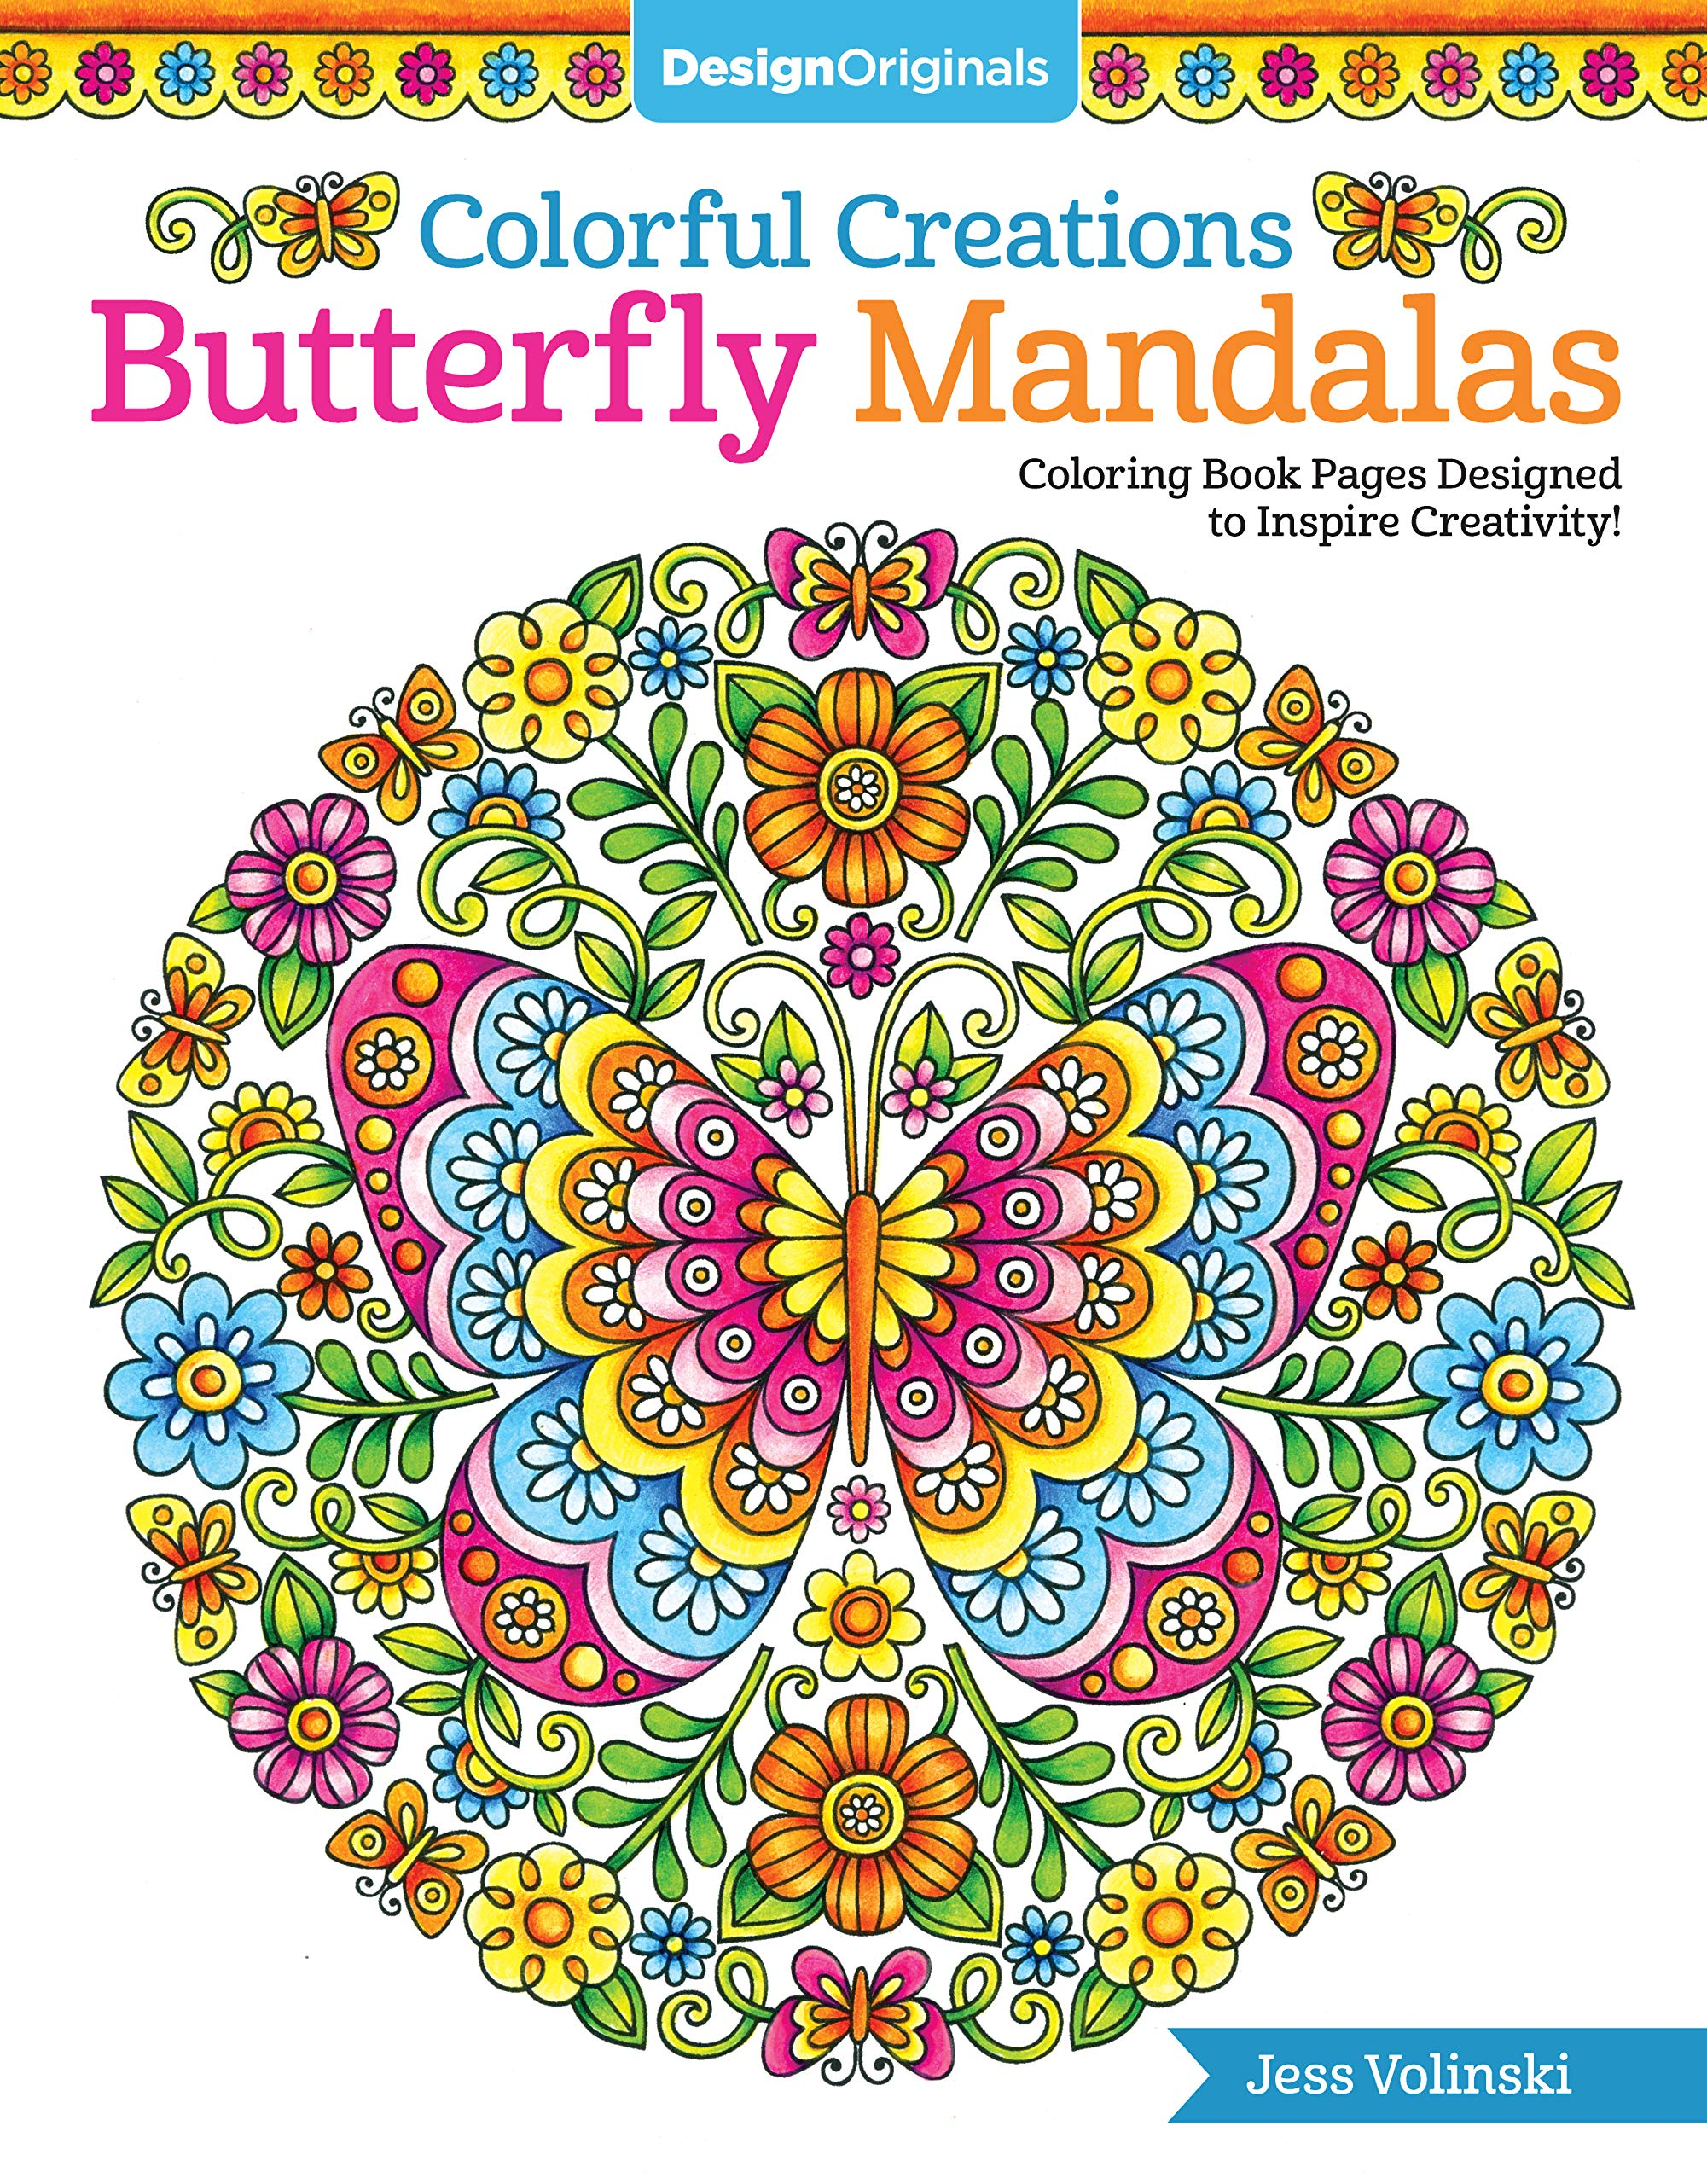 Amazon.com: Colorful Creations Butterfly Mandalas: Coloring Book ...